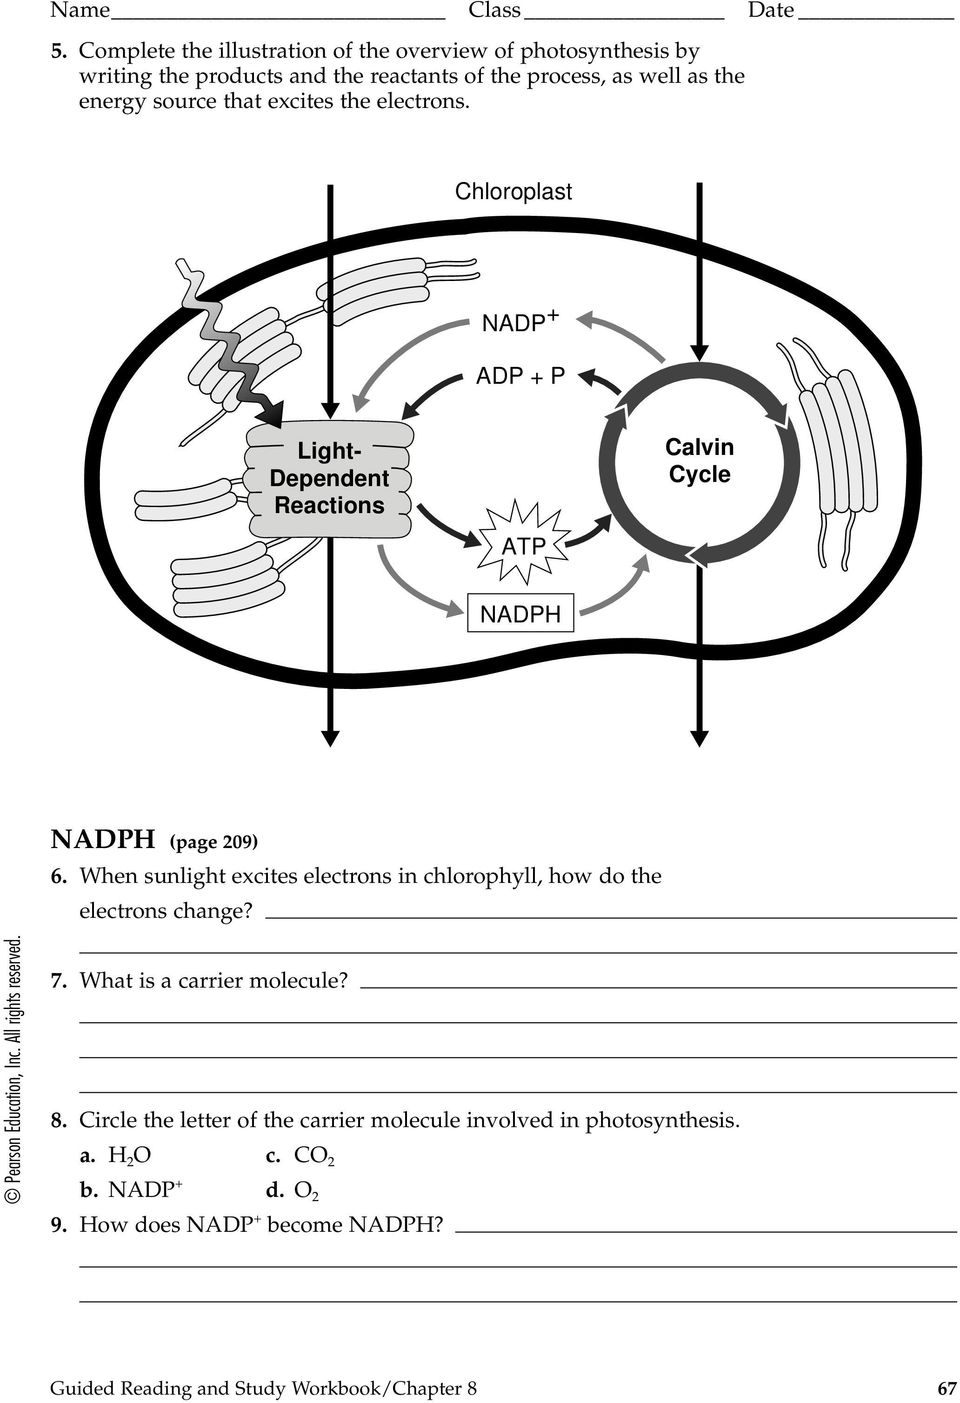 Overview of Photosynthesis   BIO 101 General Biology I moreover Photosynthesis Review Worksheet furthermore Photosynthesis   Cellular Respiration Worksheet also AP BIOLOGY EXAM REVIEW GUIDE likewise Photosynthesis And Cellular Respiration Worksheet Google   salle de in addition Photosynthesis Worksheets   Free Printables   Education besides  further Photosynthesis Review Worksheet moreover Photosynthesis Review Worksheet as well ADD YOUR PAGE LE likewise  as well Photosynthesis P P P  Autotrophs and Heterotrophs  page 201 as well Photosynthesis Revision Lesson by sea   Teaching Resources   Tes together with Photosynthesis  video    Khan Academy furthermore Photosynthesis Review Teaching Resources   Teachers Pay Teachers moreover Photosynthesis Worksheets   Free Printables   Education. on overview of photosynthesis review worksheet